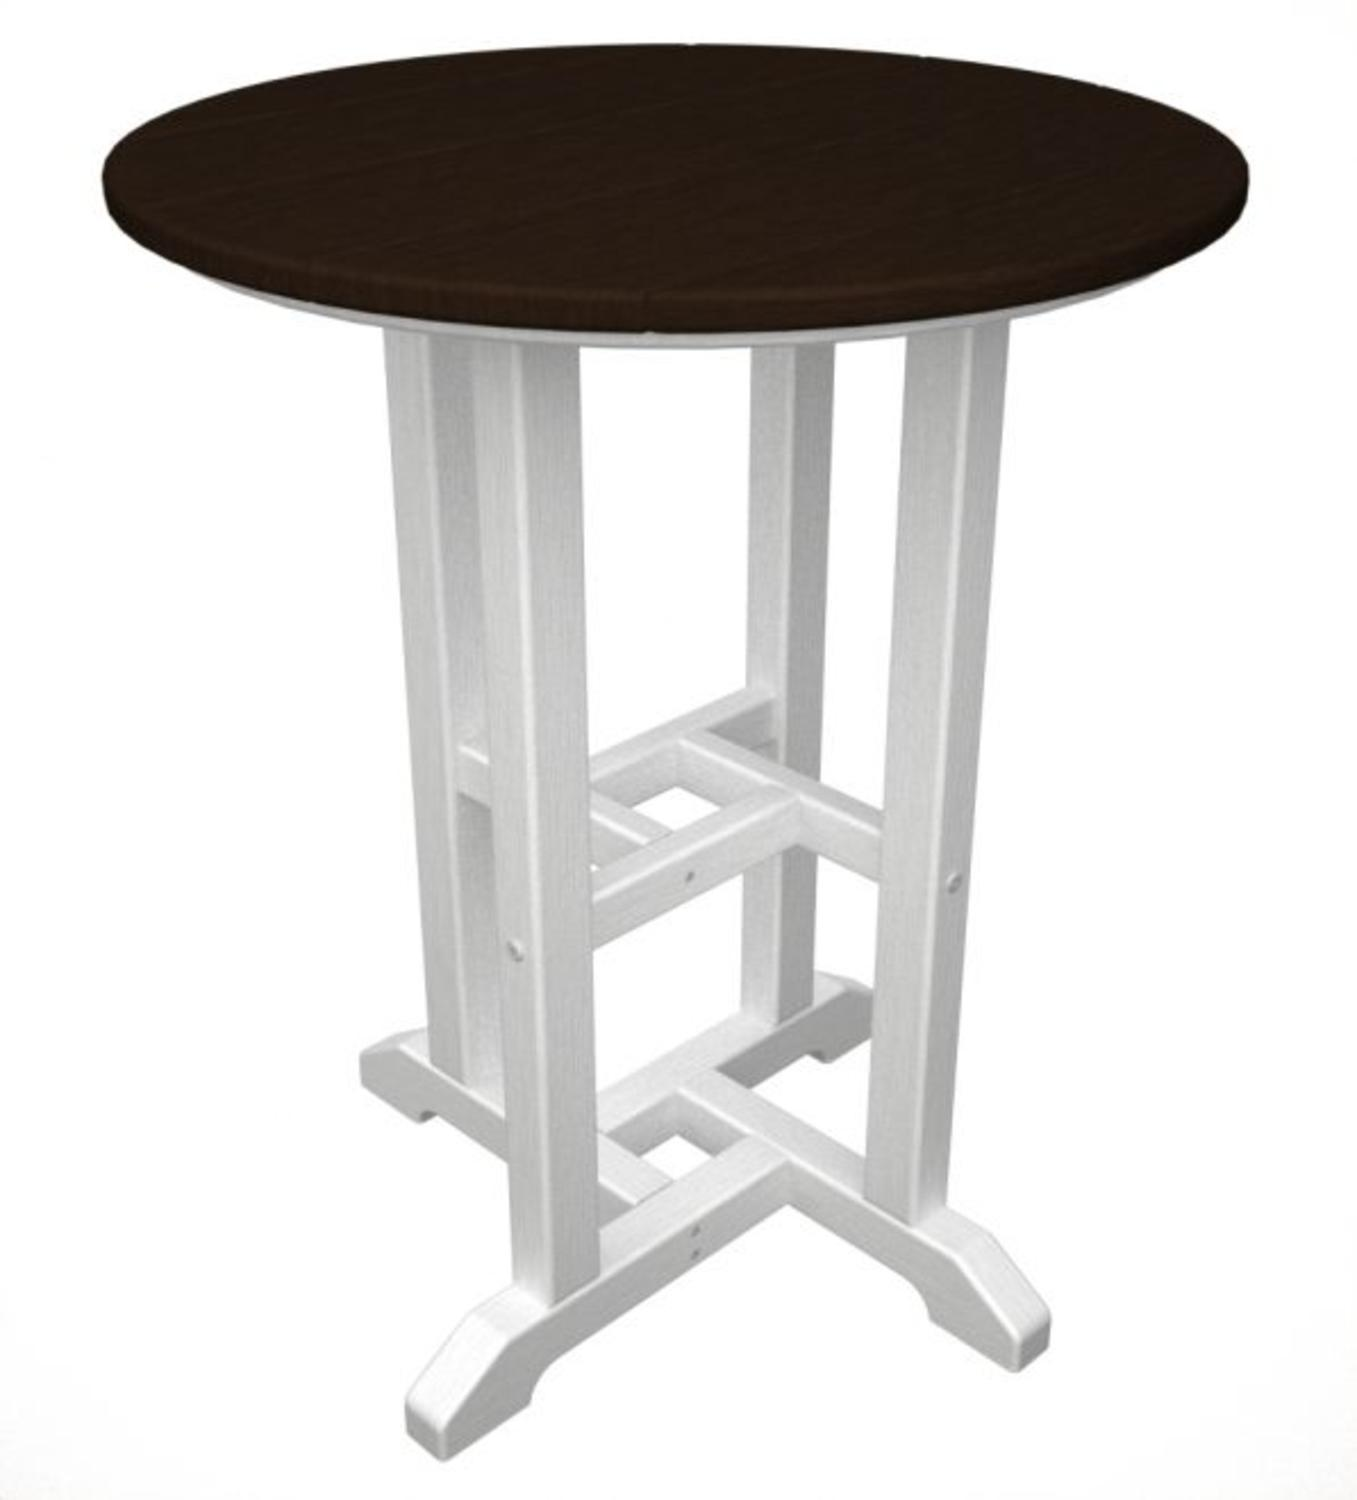 """24"""" Recycled Earth-Friendly Outdoor Patio Bistro Table - White & Chocolate Brown"""